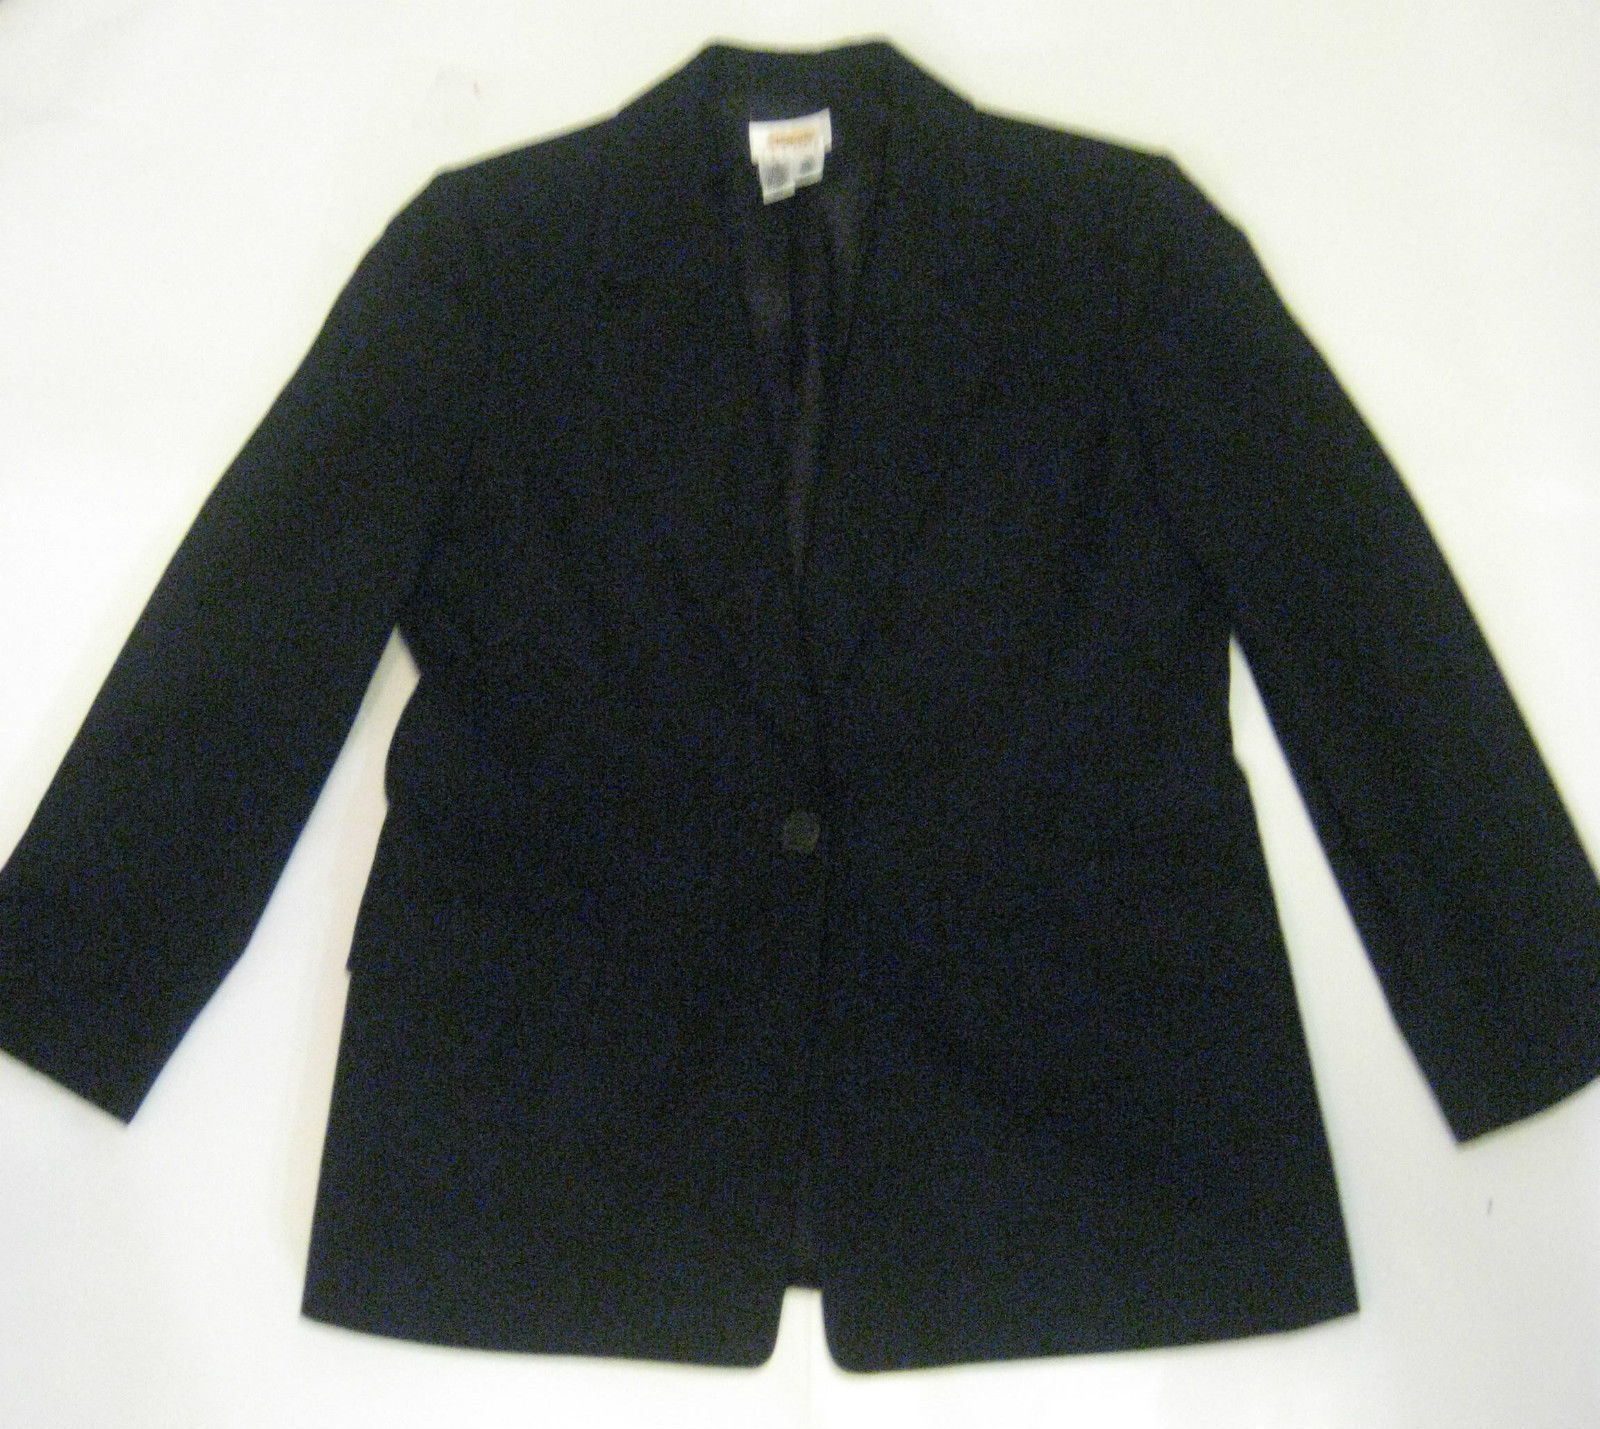 talbot black single men Talbot's knit jacket women's petite large black double breasted career  tahari women's blazer jacket 4p petite black single breasted business  men disney toys.